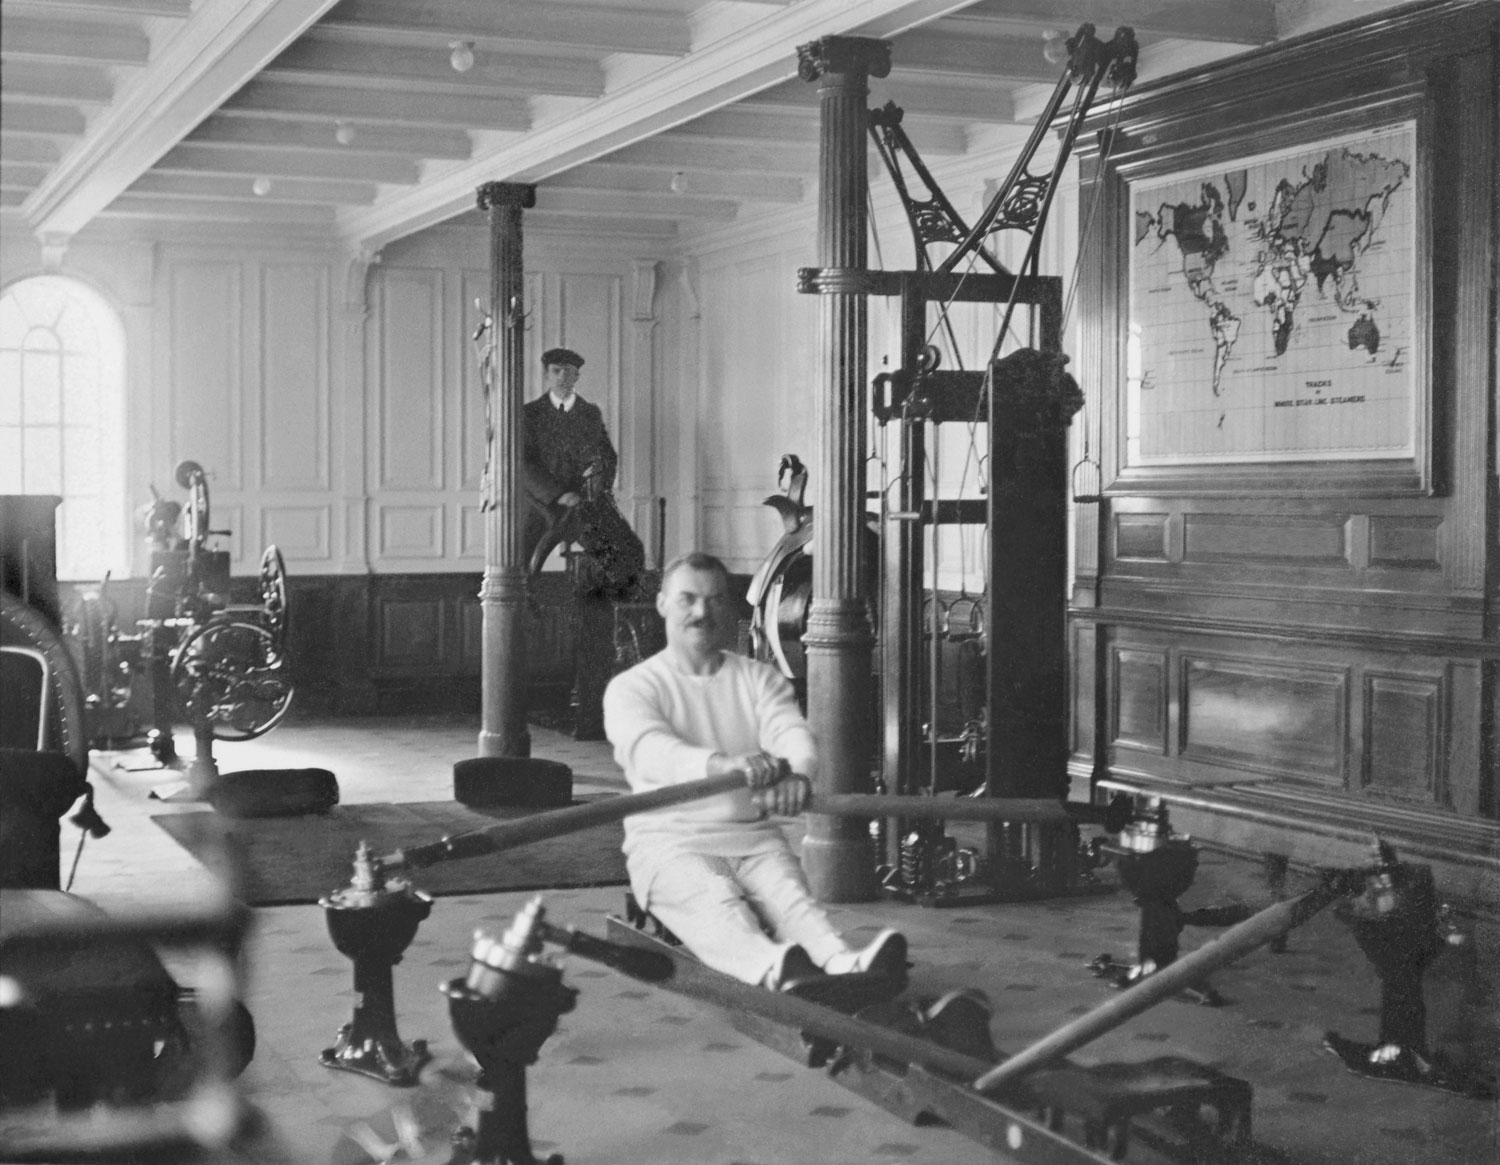 Gymnasium on the Titanic, 1912.